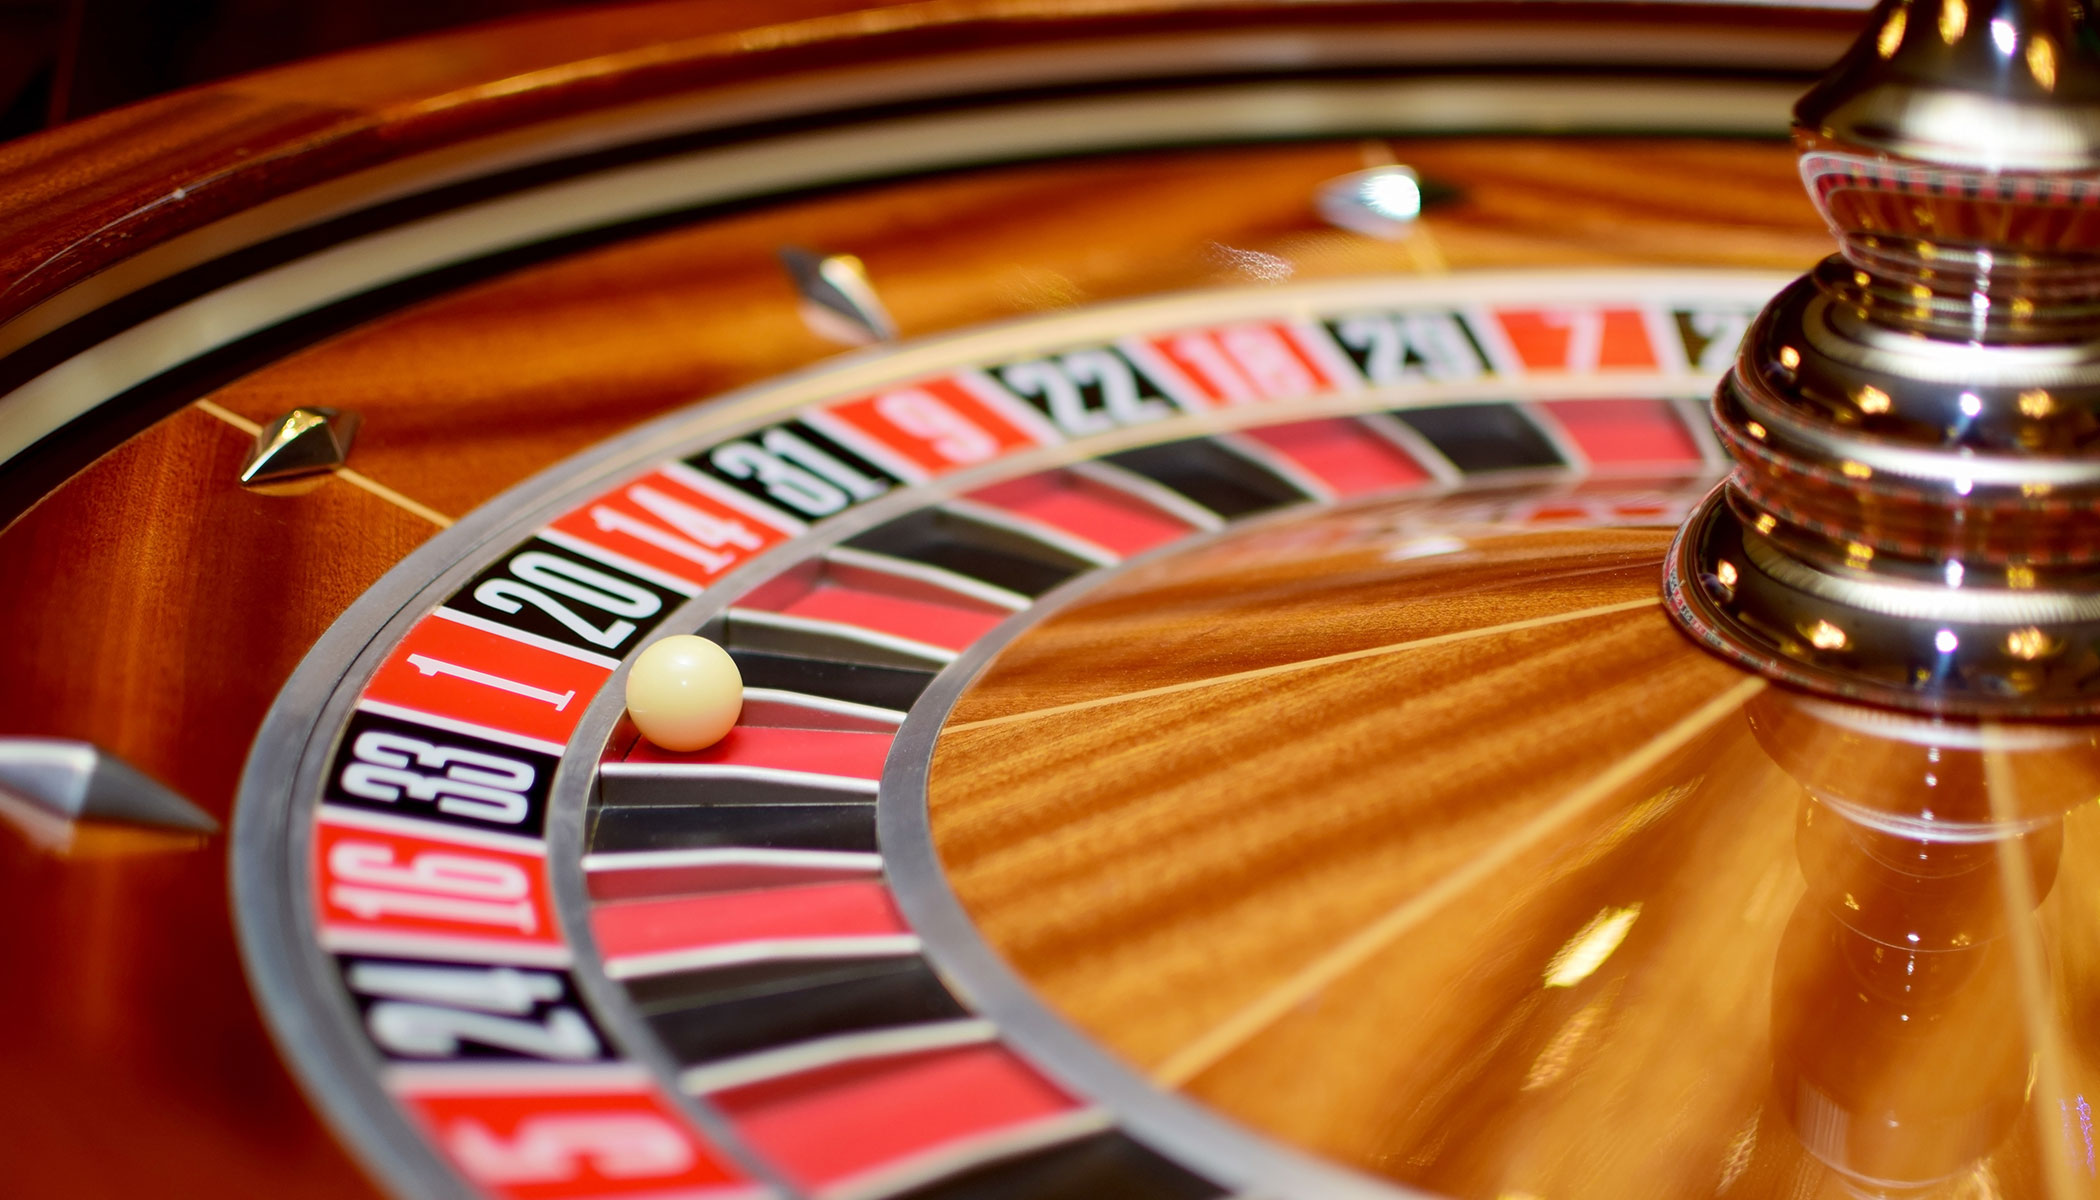 roulette_banner2100x1200-2